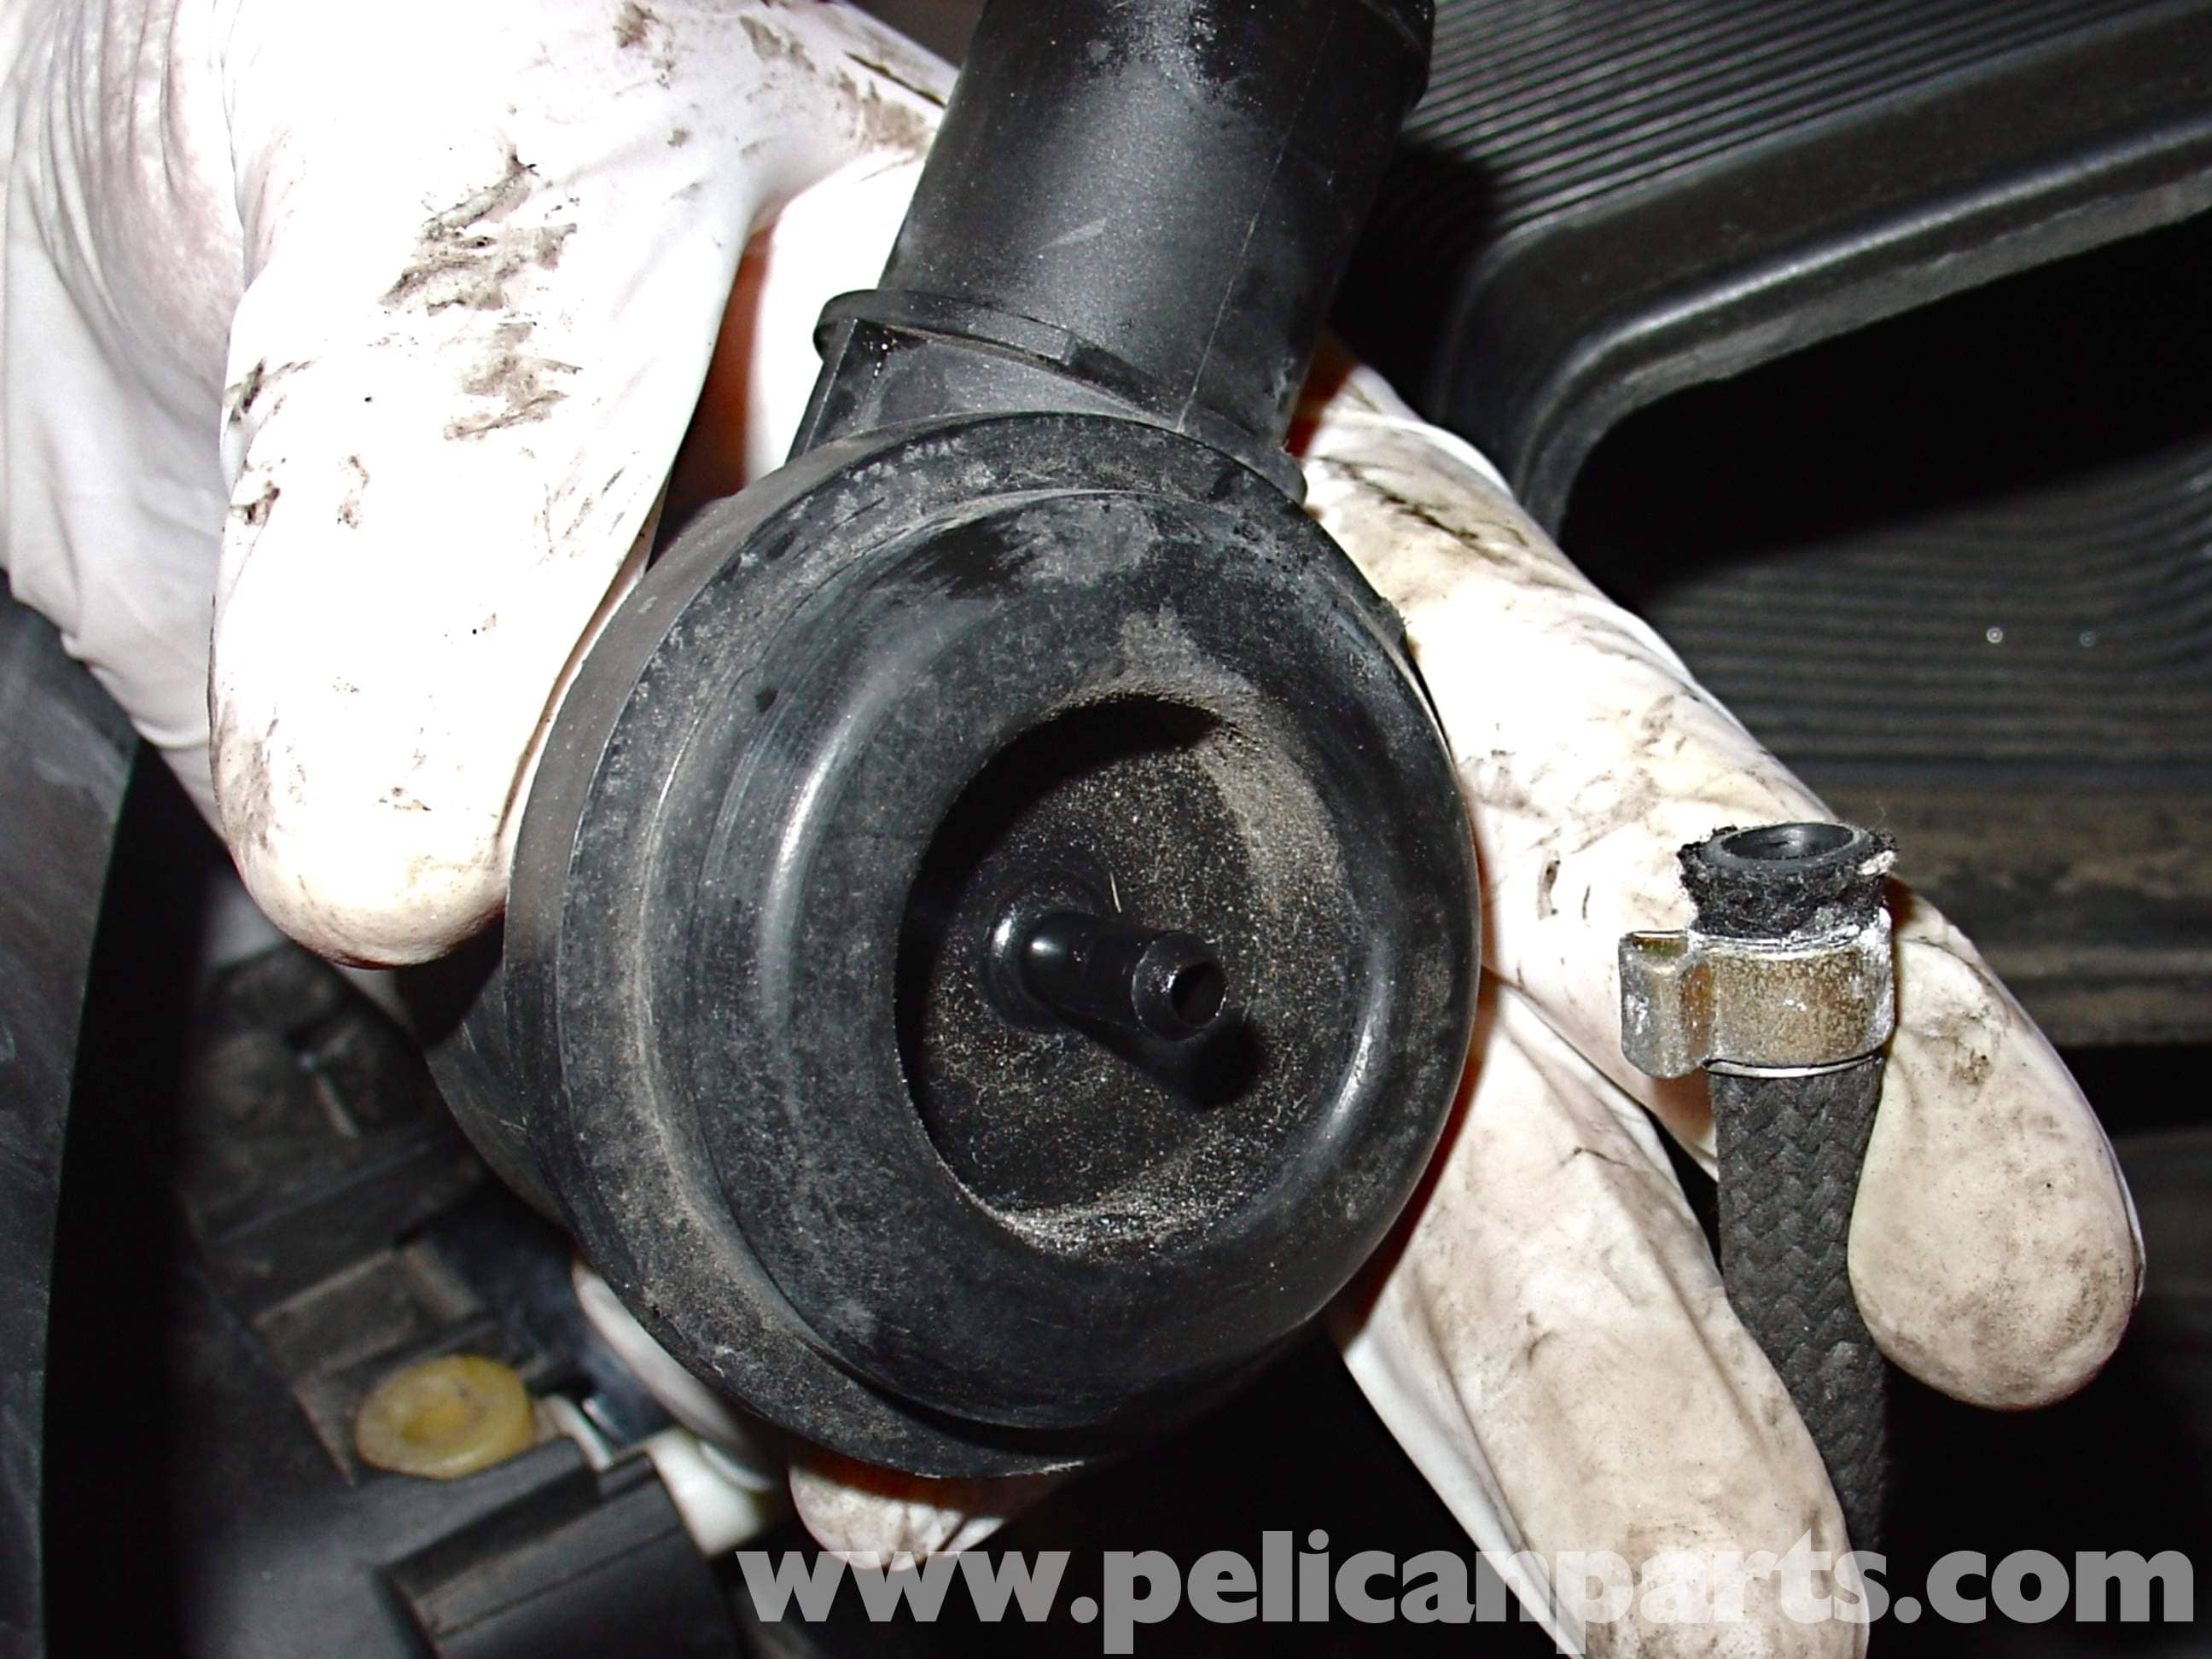 Audi A4 1 8T Volkswagen Diverter Valve Replacement | Golf